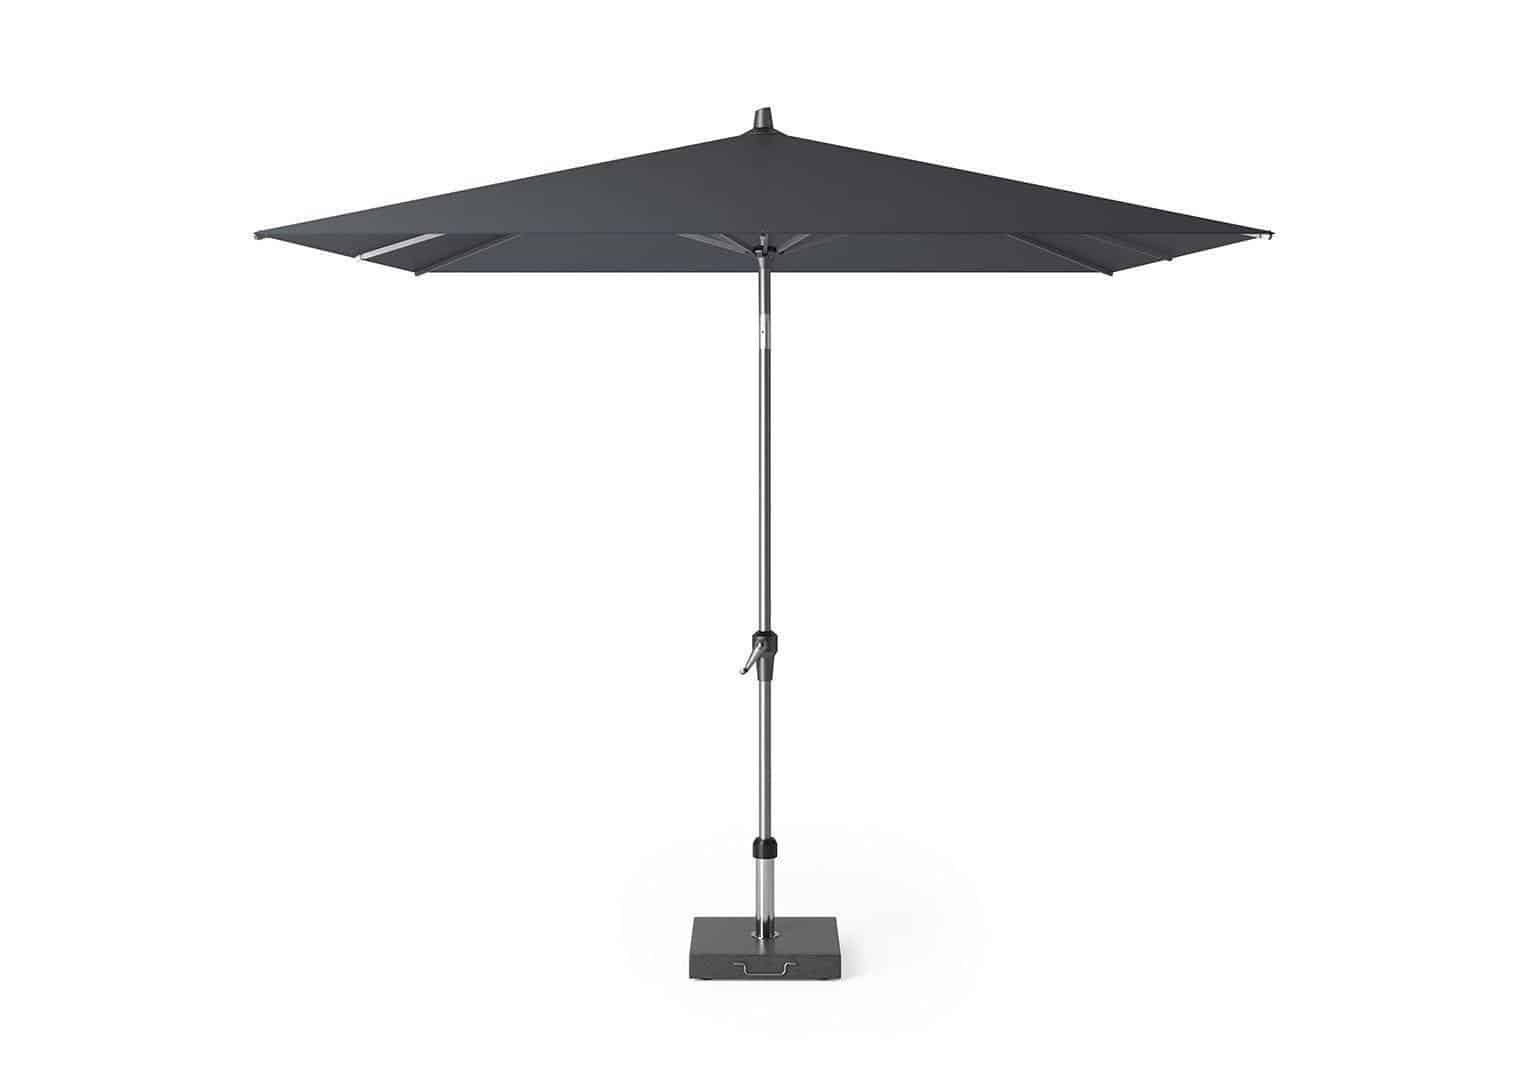 Parasol ogrodowy  Riva 2,5 m x 2,5 m anthracite 306